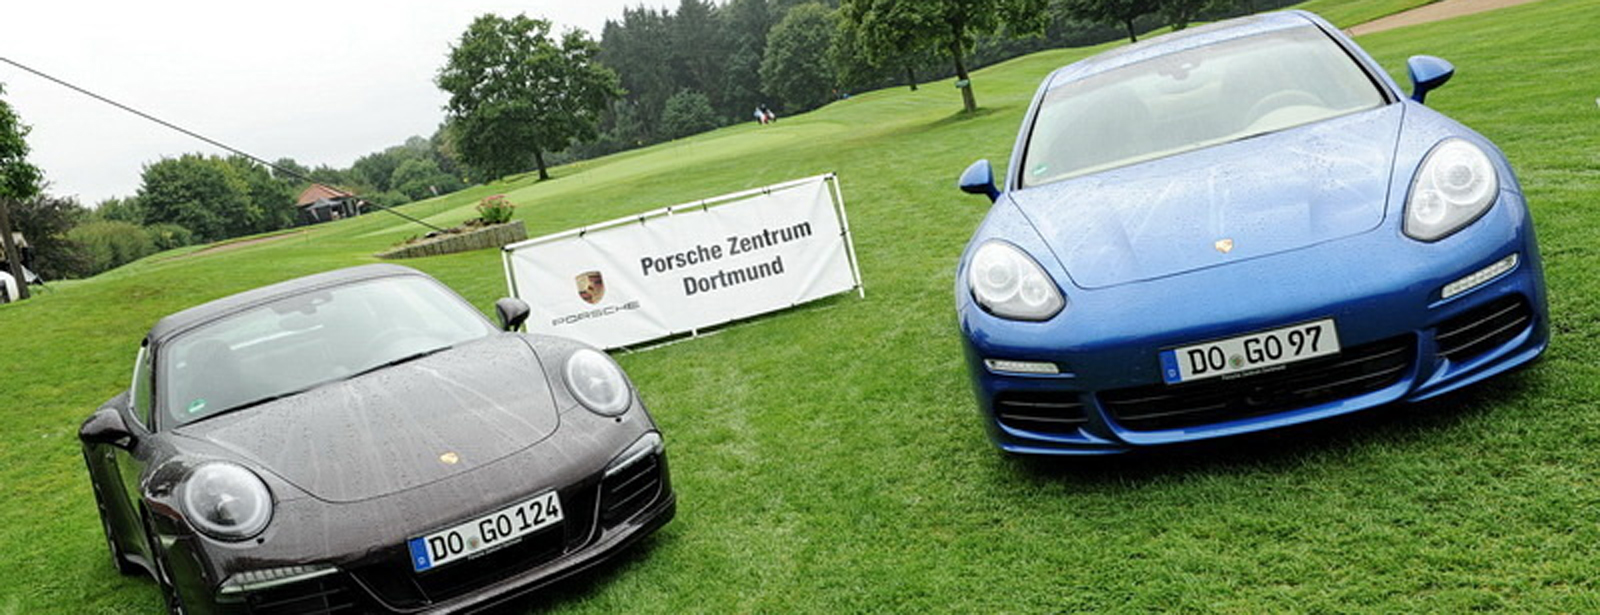 porsche zentrum dortmund porsche manager golfcup. Black Bedroom Furniture Sets. Home Design Ideas